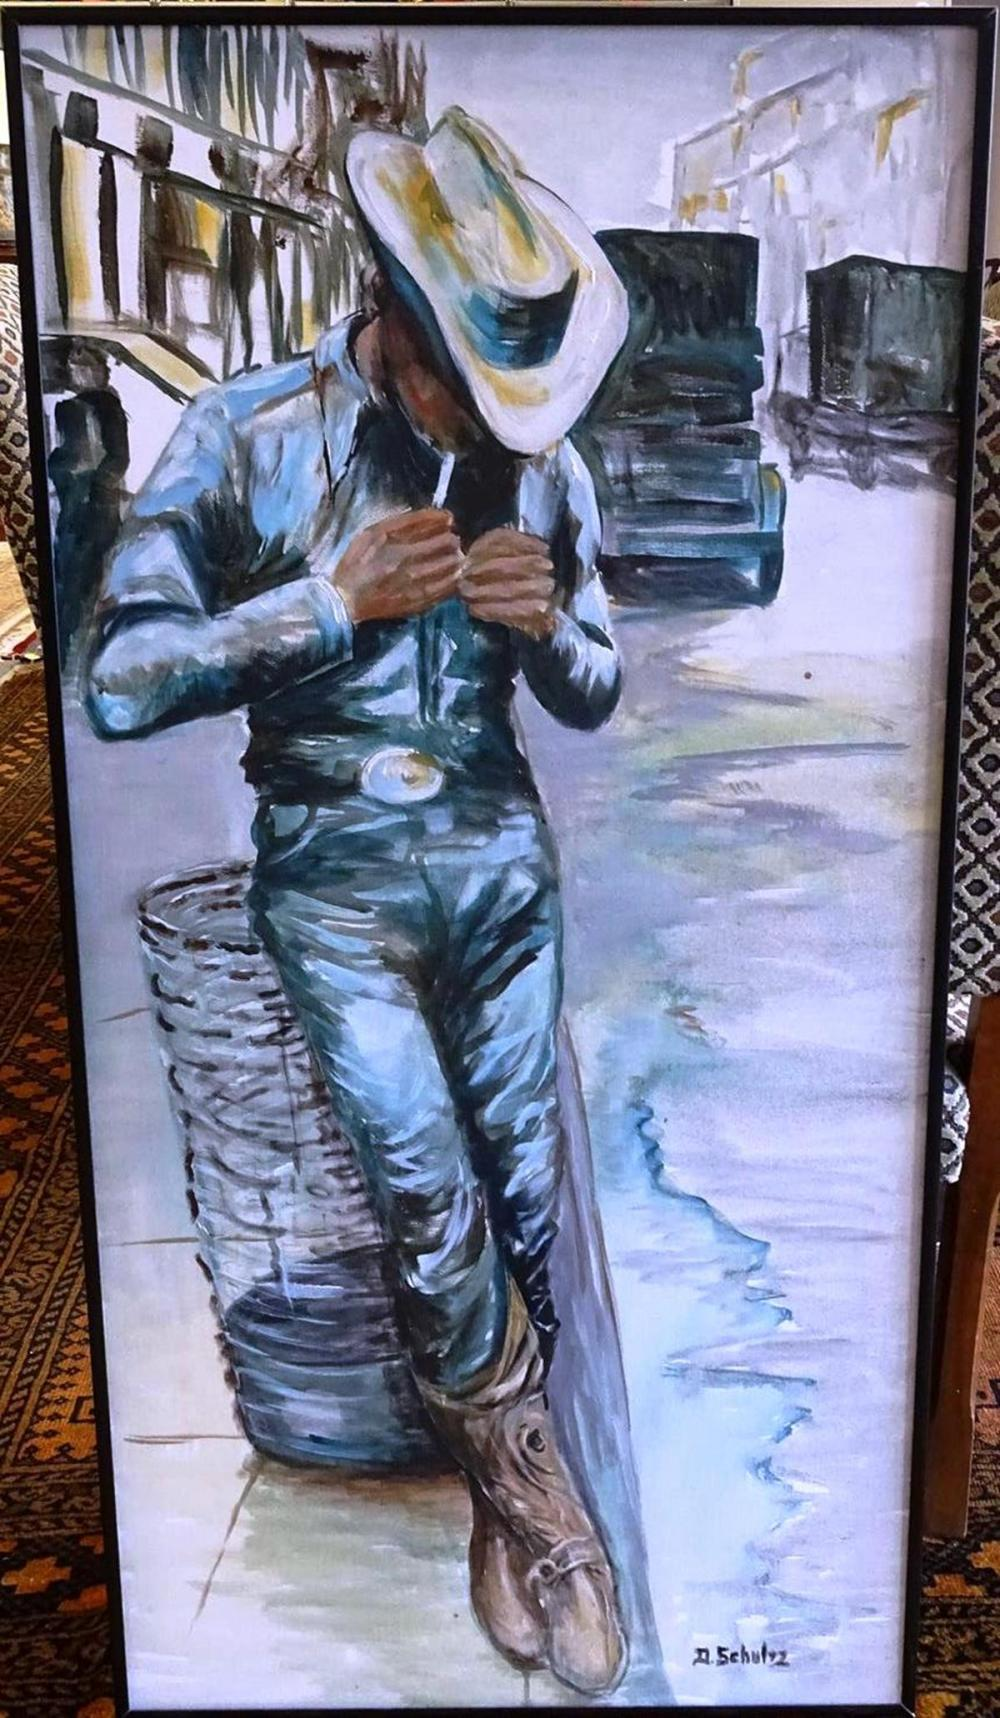 DOROTHY SCHULTZ PAINTING OF COWBOY